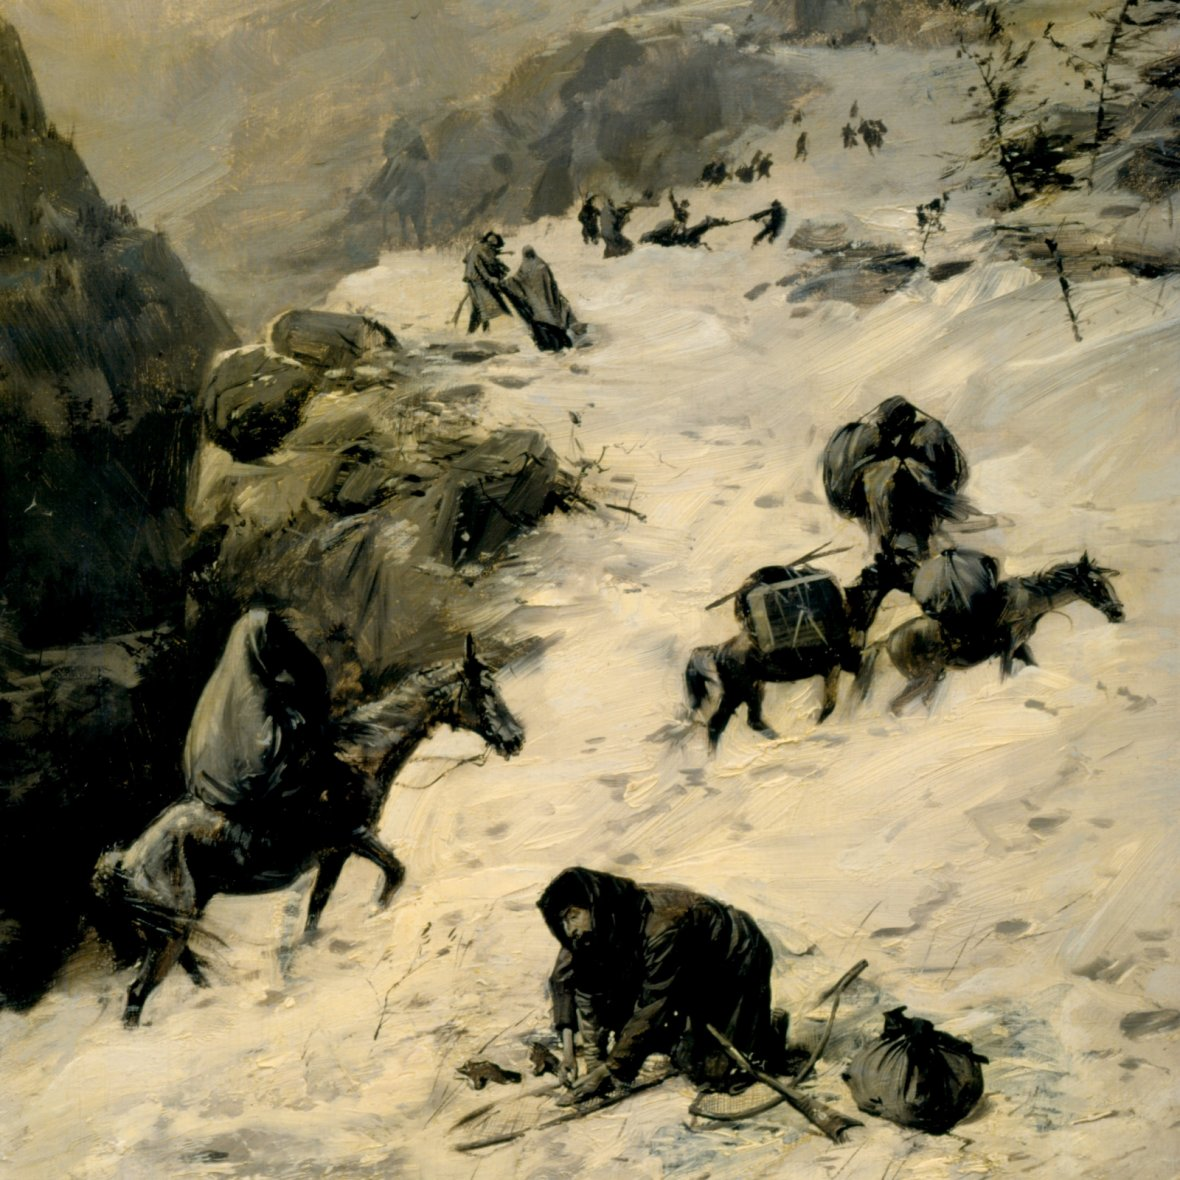 Donner Party cannibalism wasn't a myth – it's evidence that starving